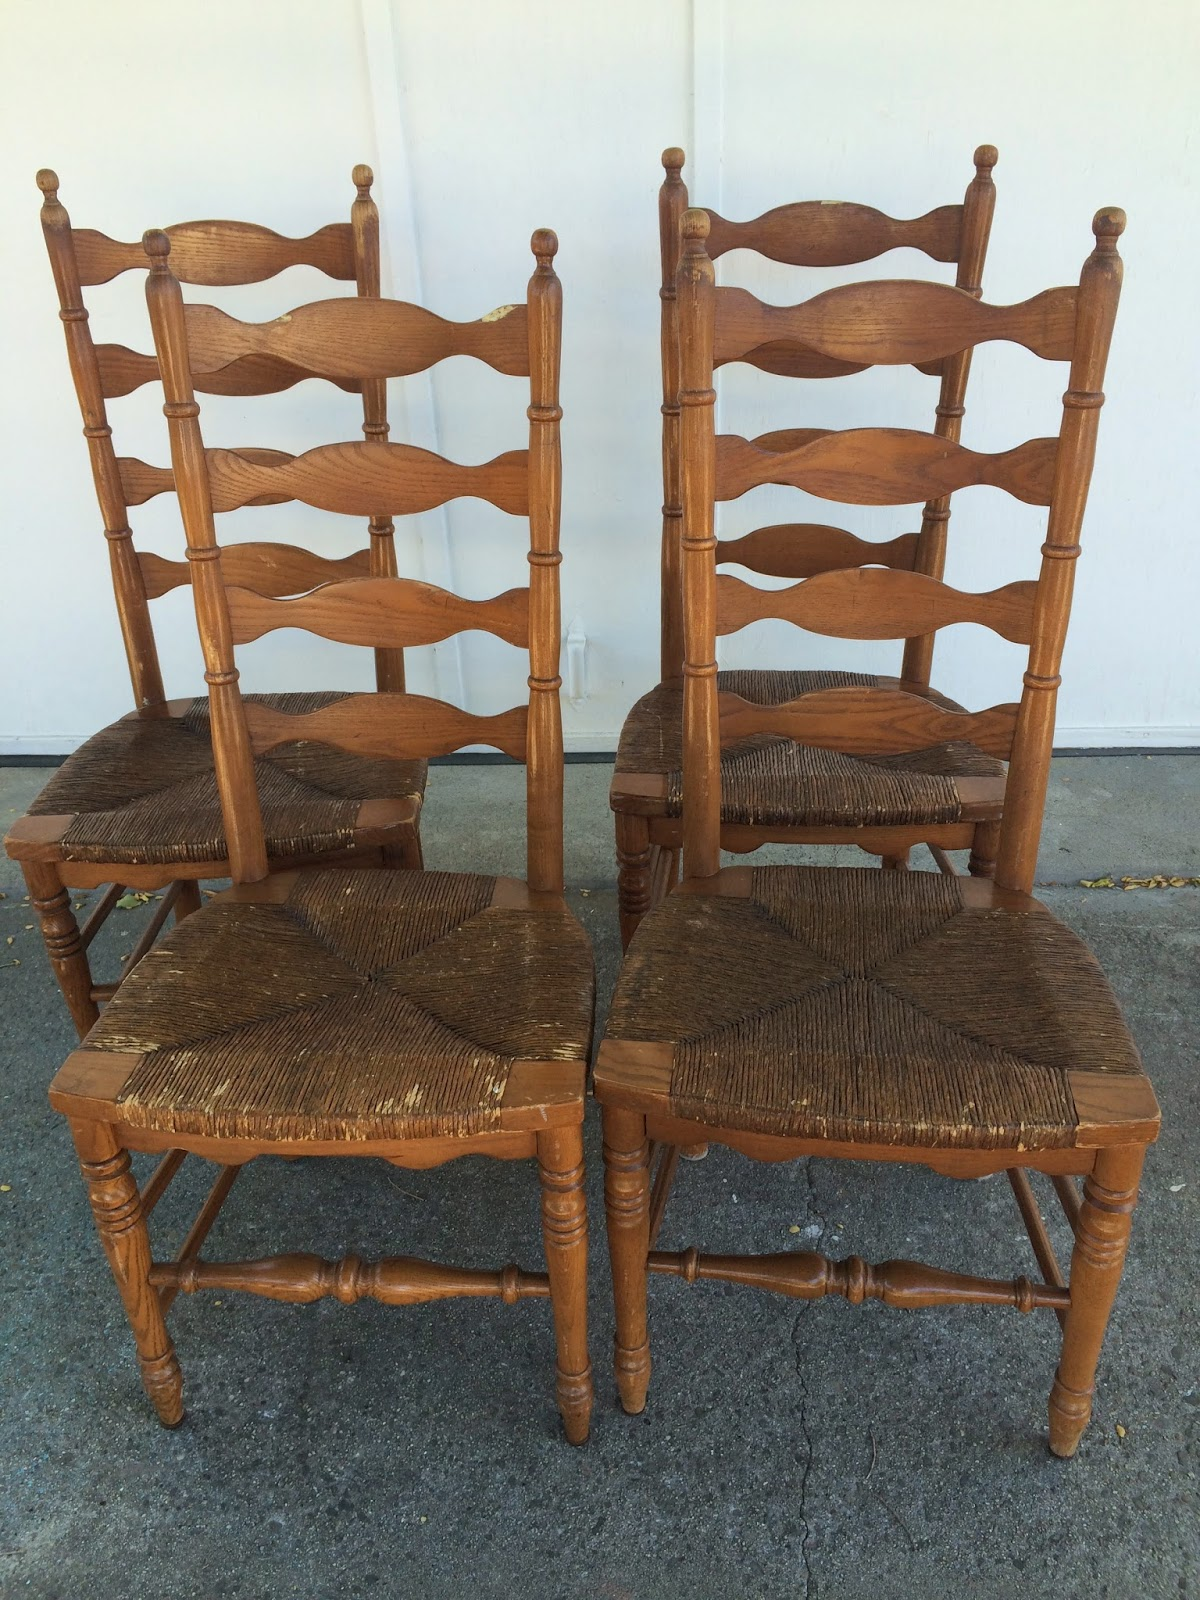 4 Ladder Back Chairs with Rush Seats - D.D.'s Cottage And Design: 4 Ladder Back Chairs With Rush Seats